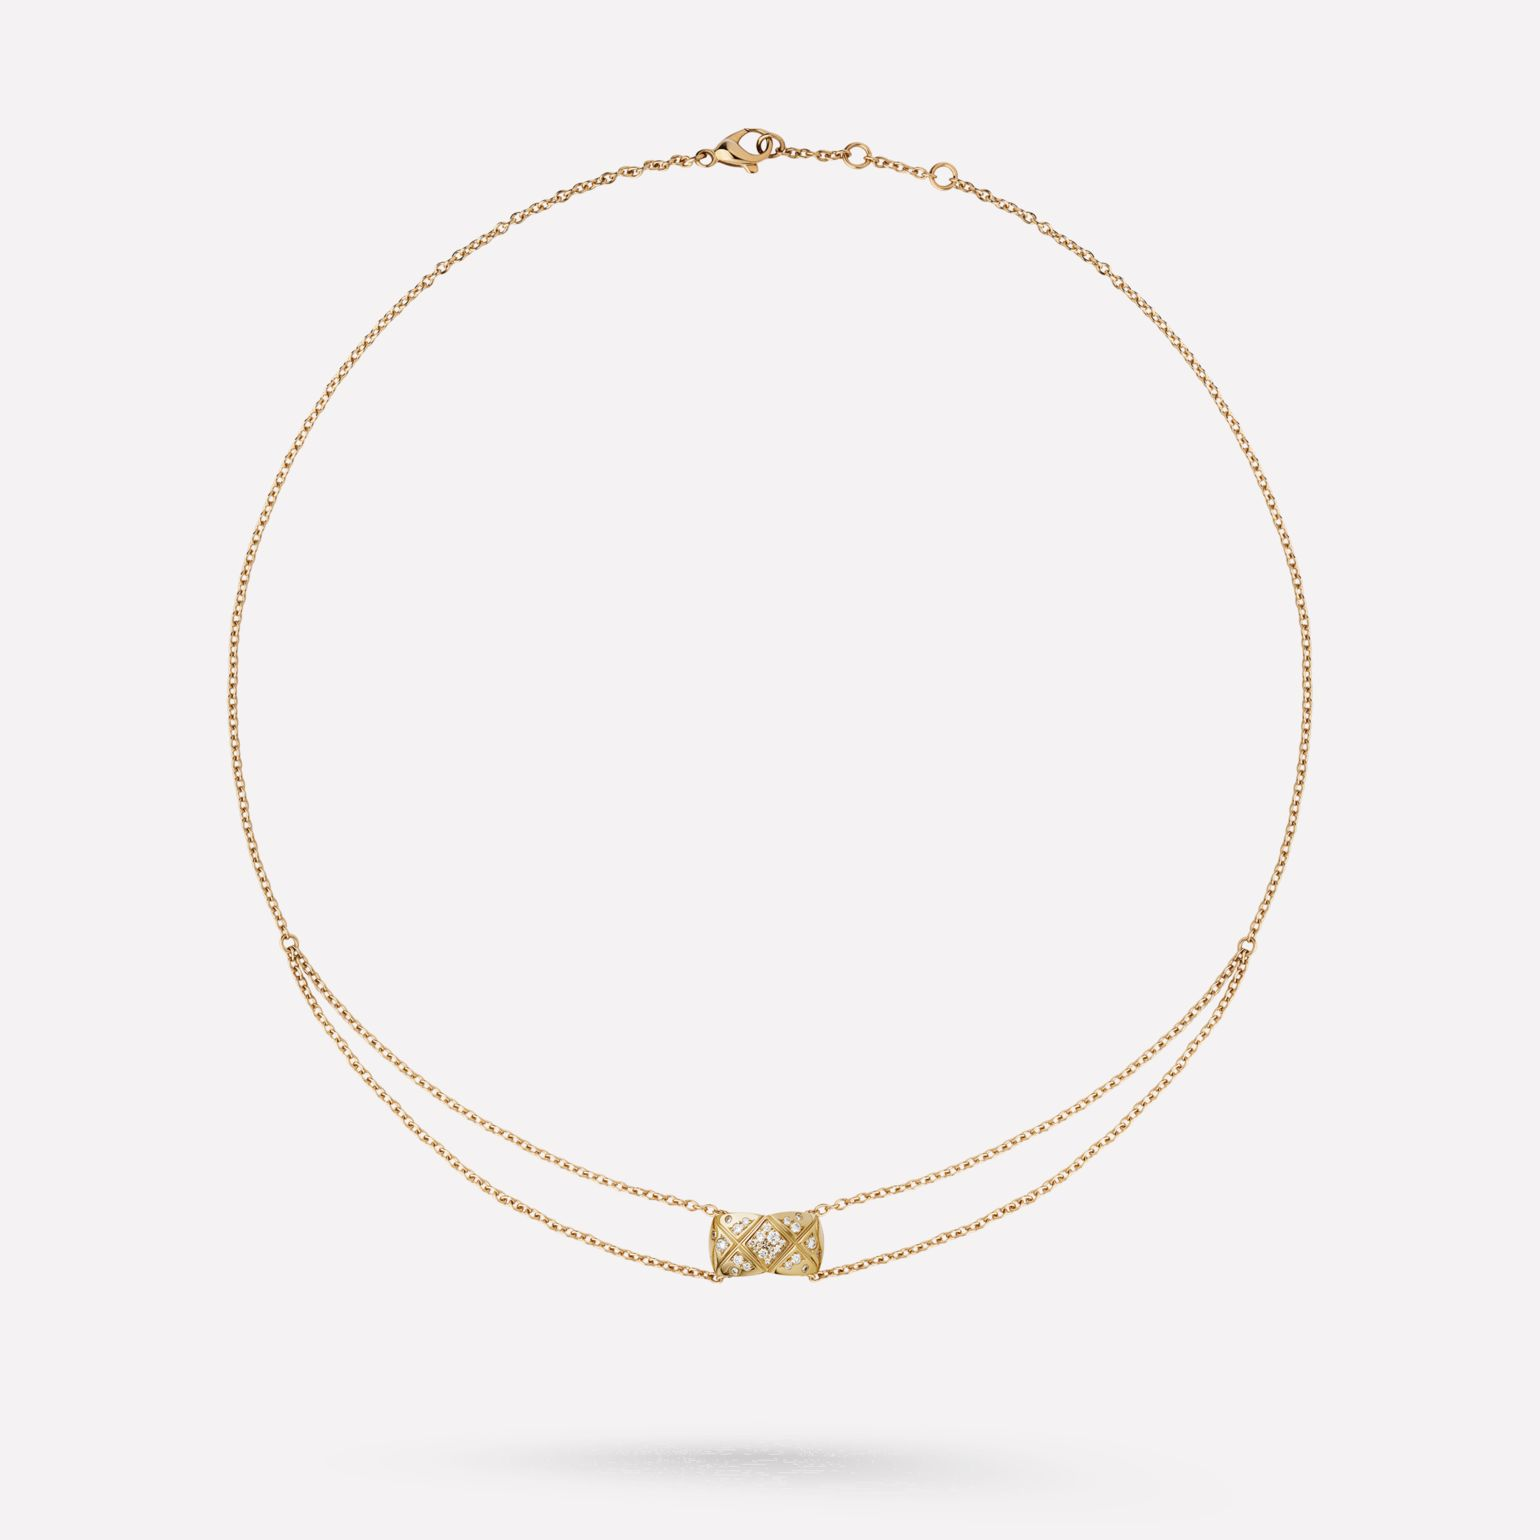 Coco Crush necklace Quilted motif, 18K BEIGE GOLD, diamonds